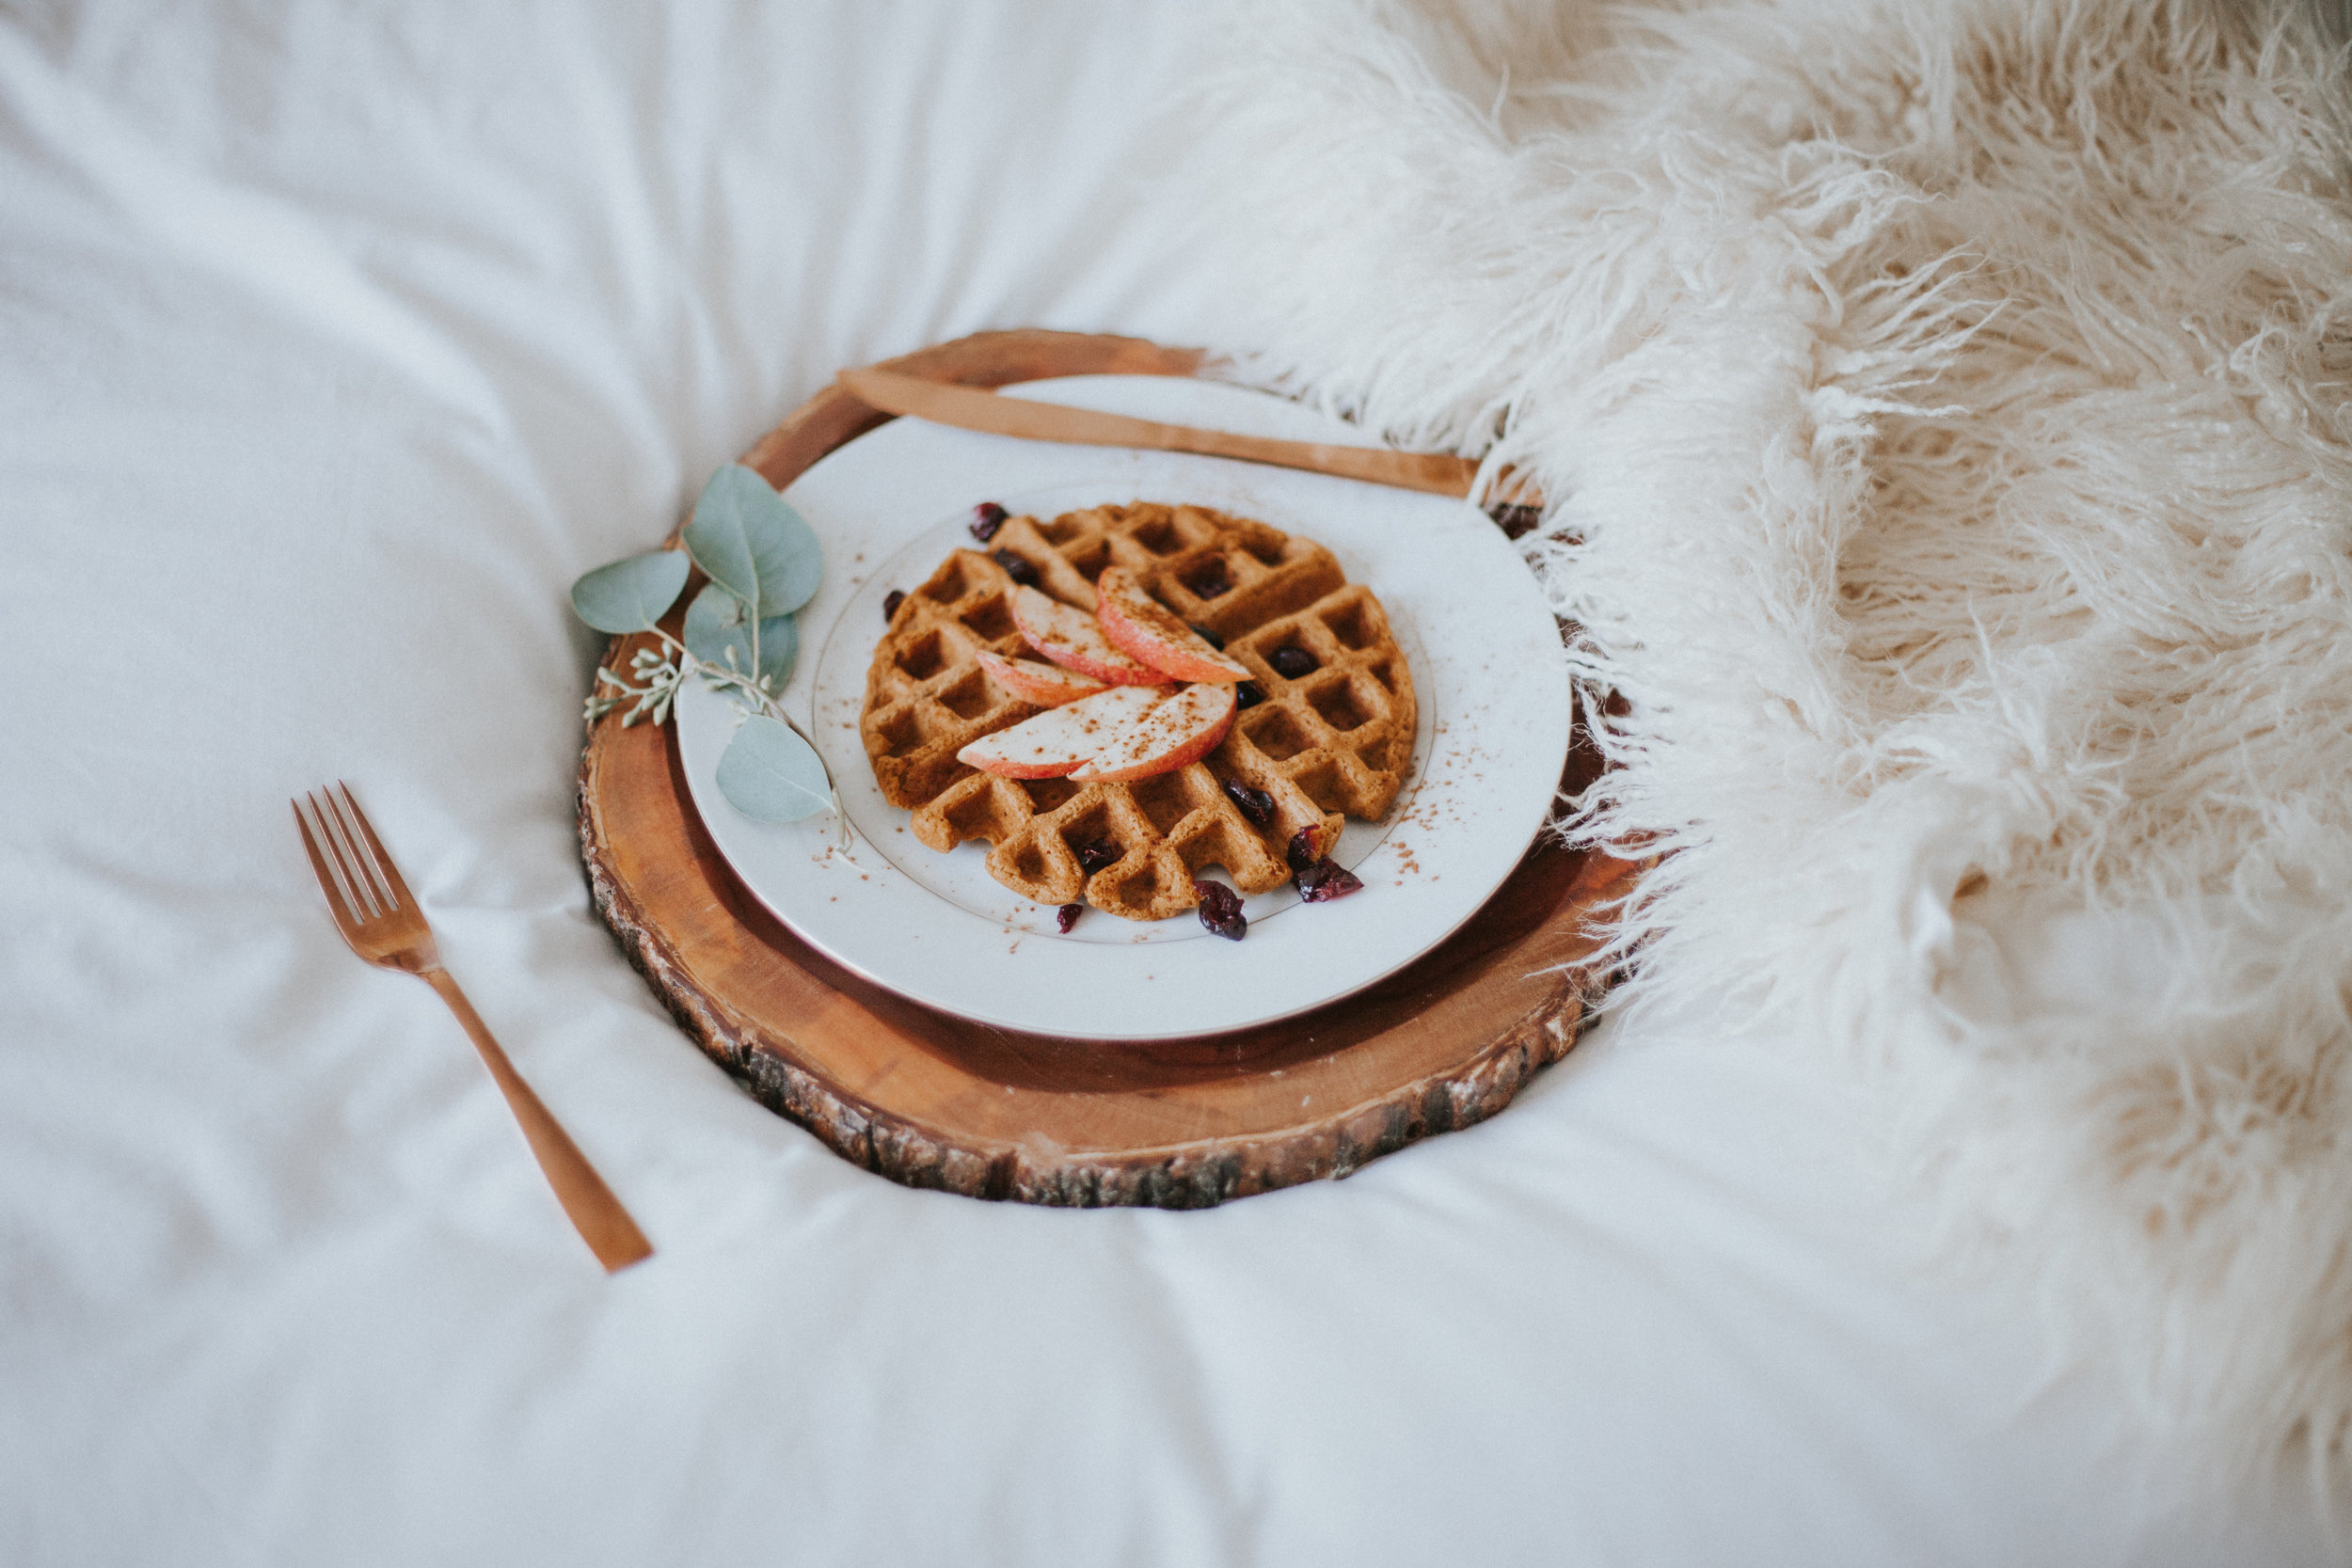 Make these amazing pumpkin waffles in under five minutes, by mixing Kodiak Cakes Gluten Free Flapjack Mix with a little pumpkin puree, maple syrup, pumpkin spice and almond milk. My favorite toppings are apple + cranberries or pear + candied ginger!